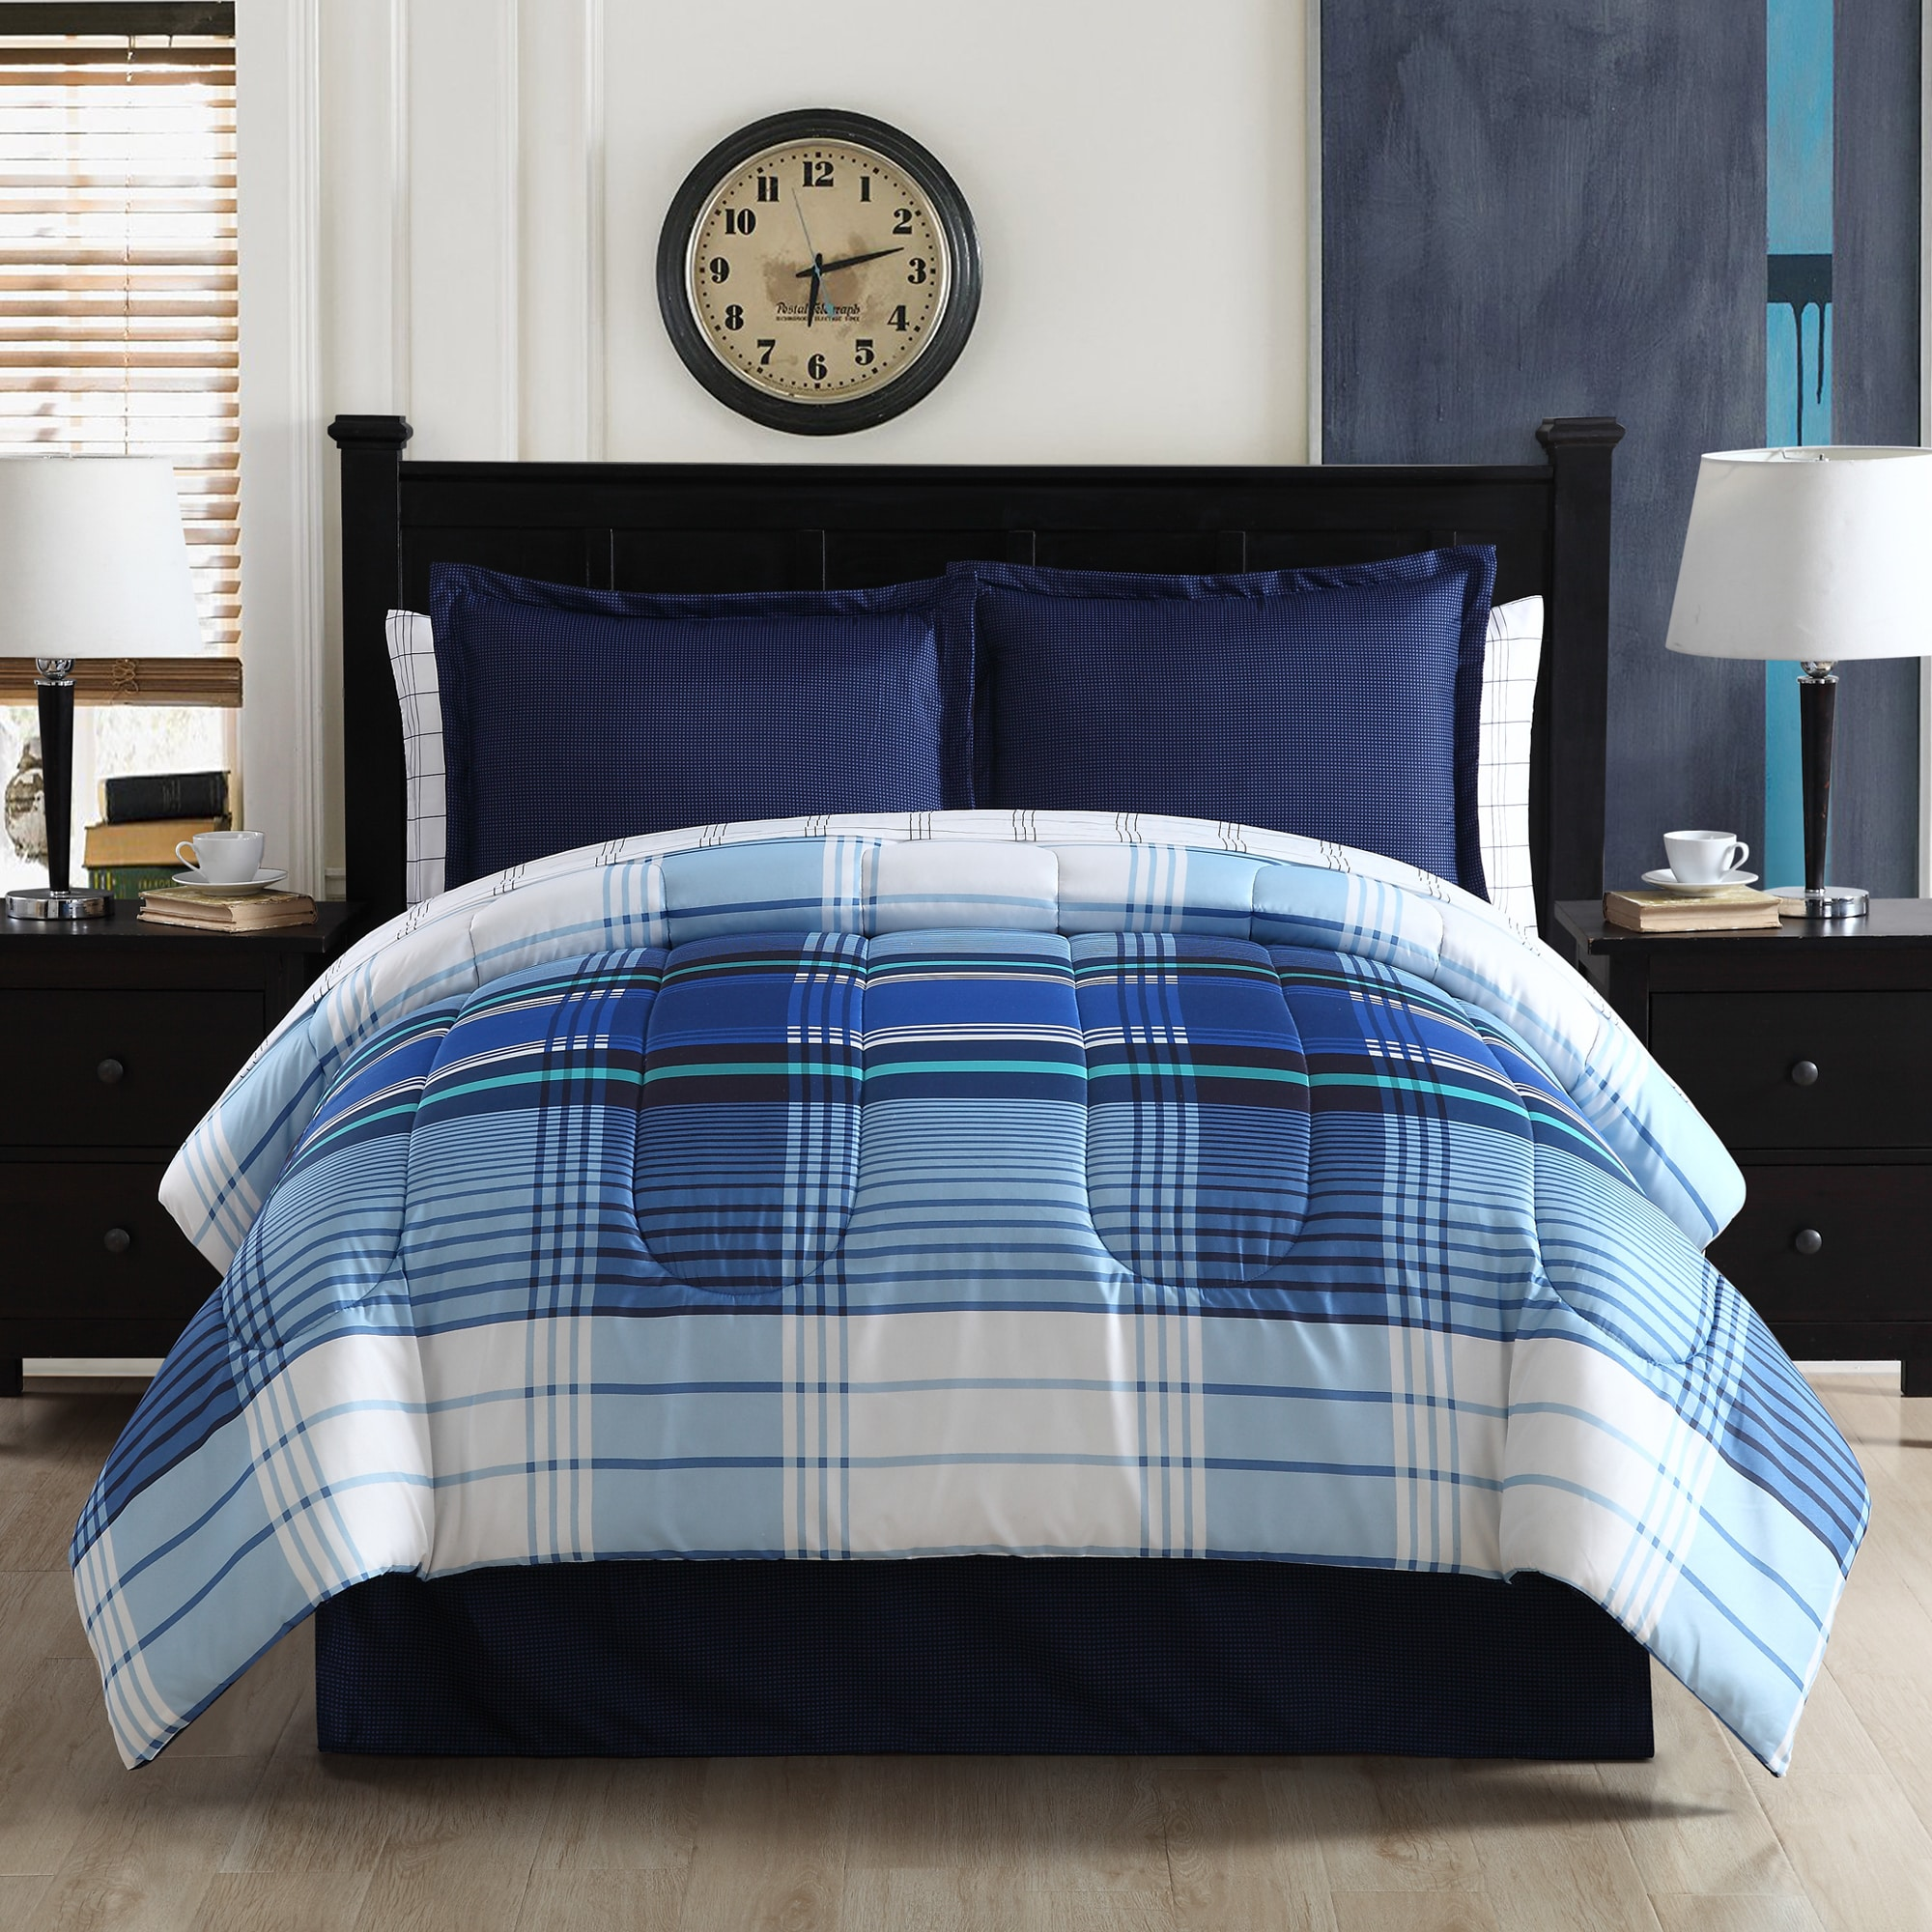 Shop Blue Plaid Microfiber Bed In A Bag Free Shipping Today